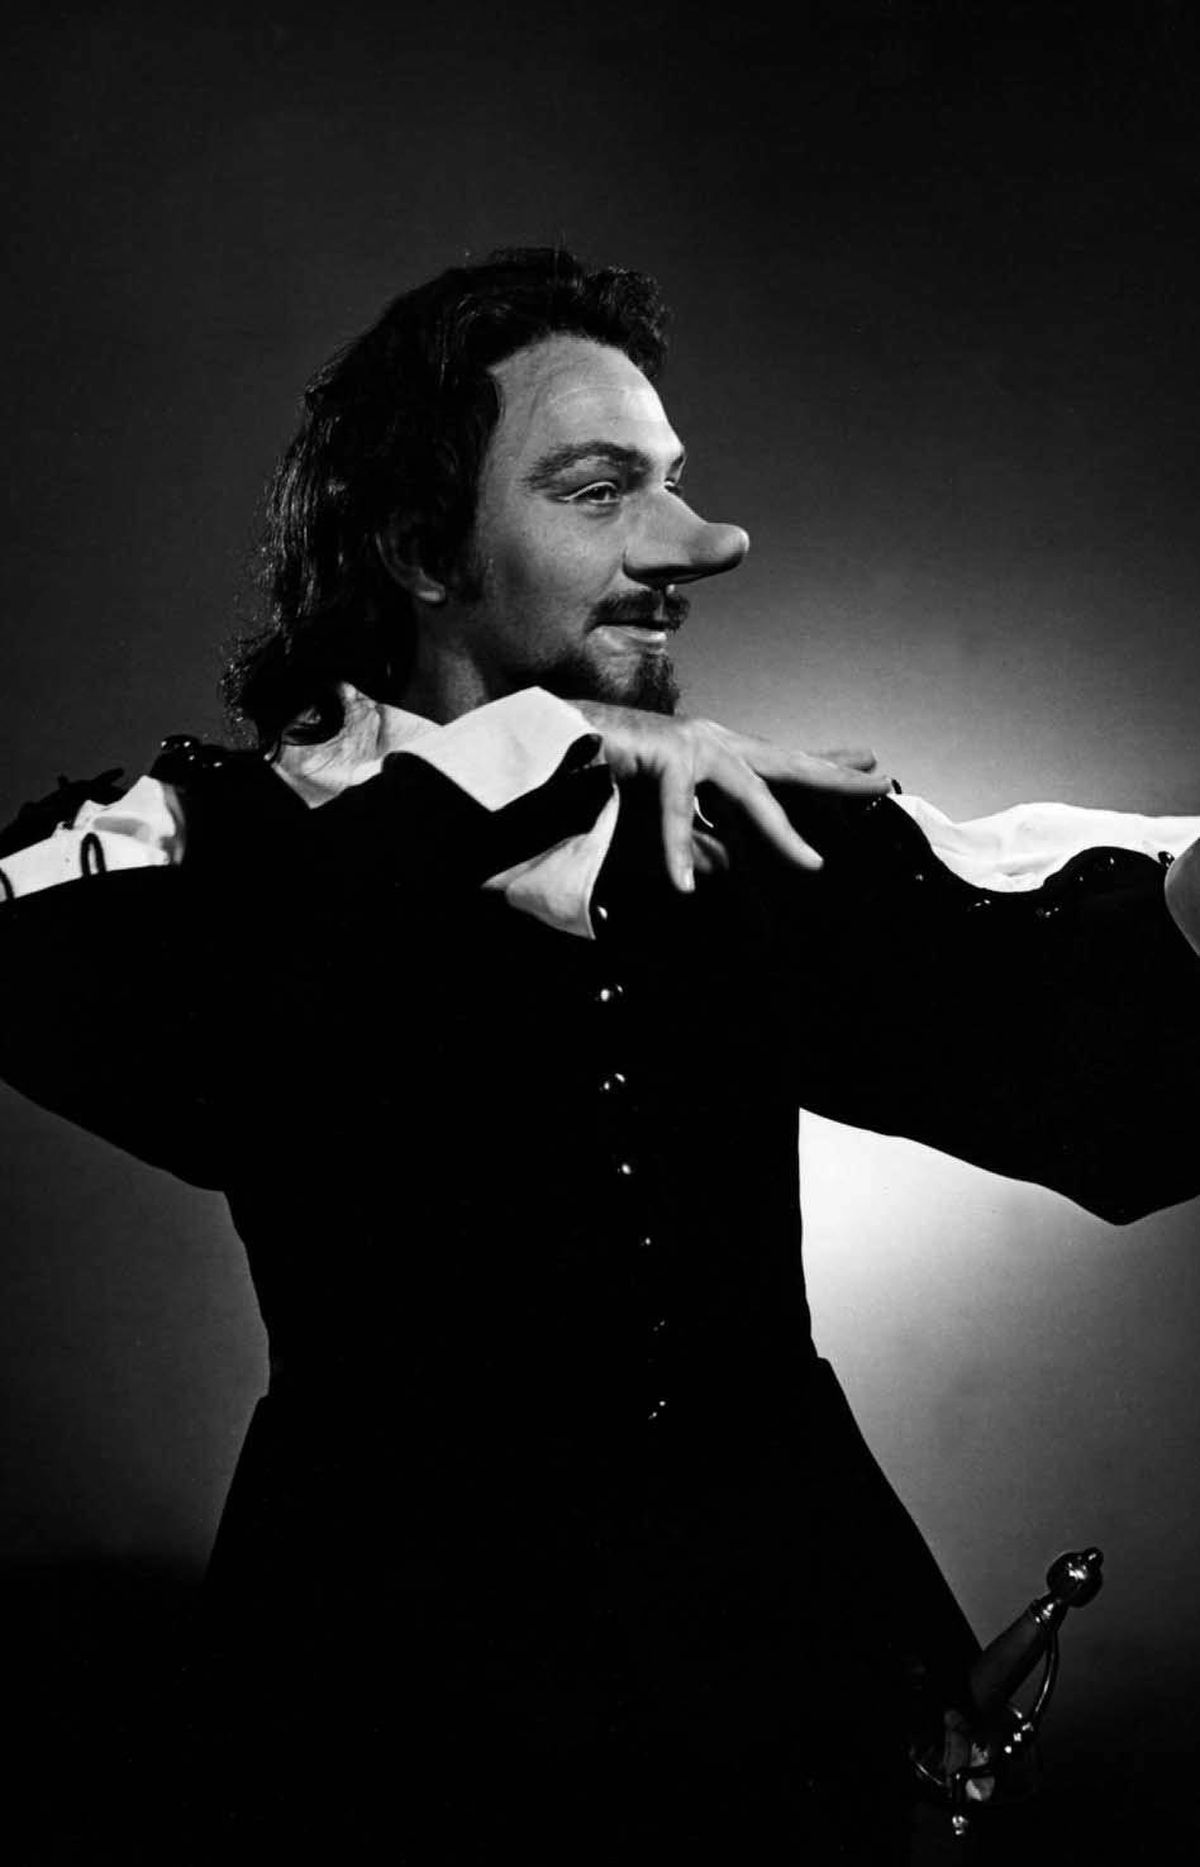 Christopher Plummer as Cyrano de Bergerac in a 1962 Stratford production.